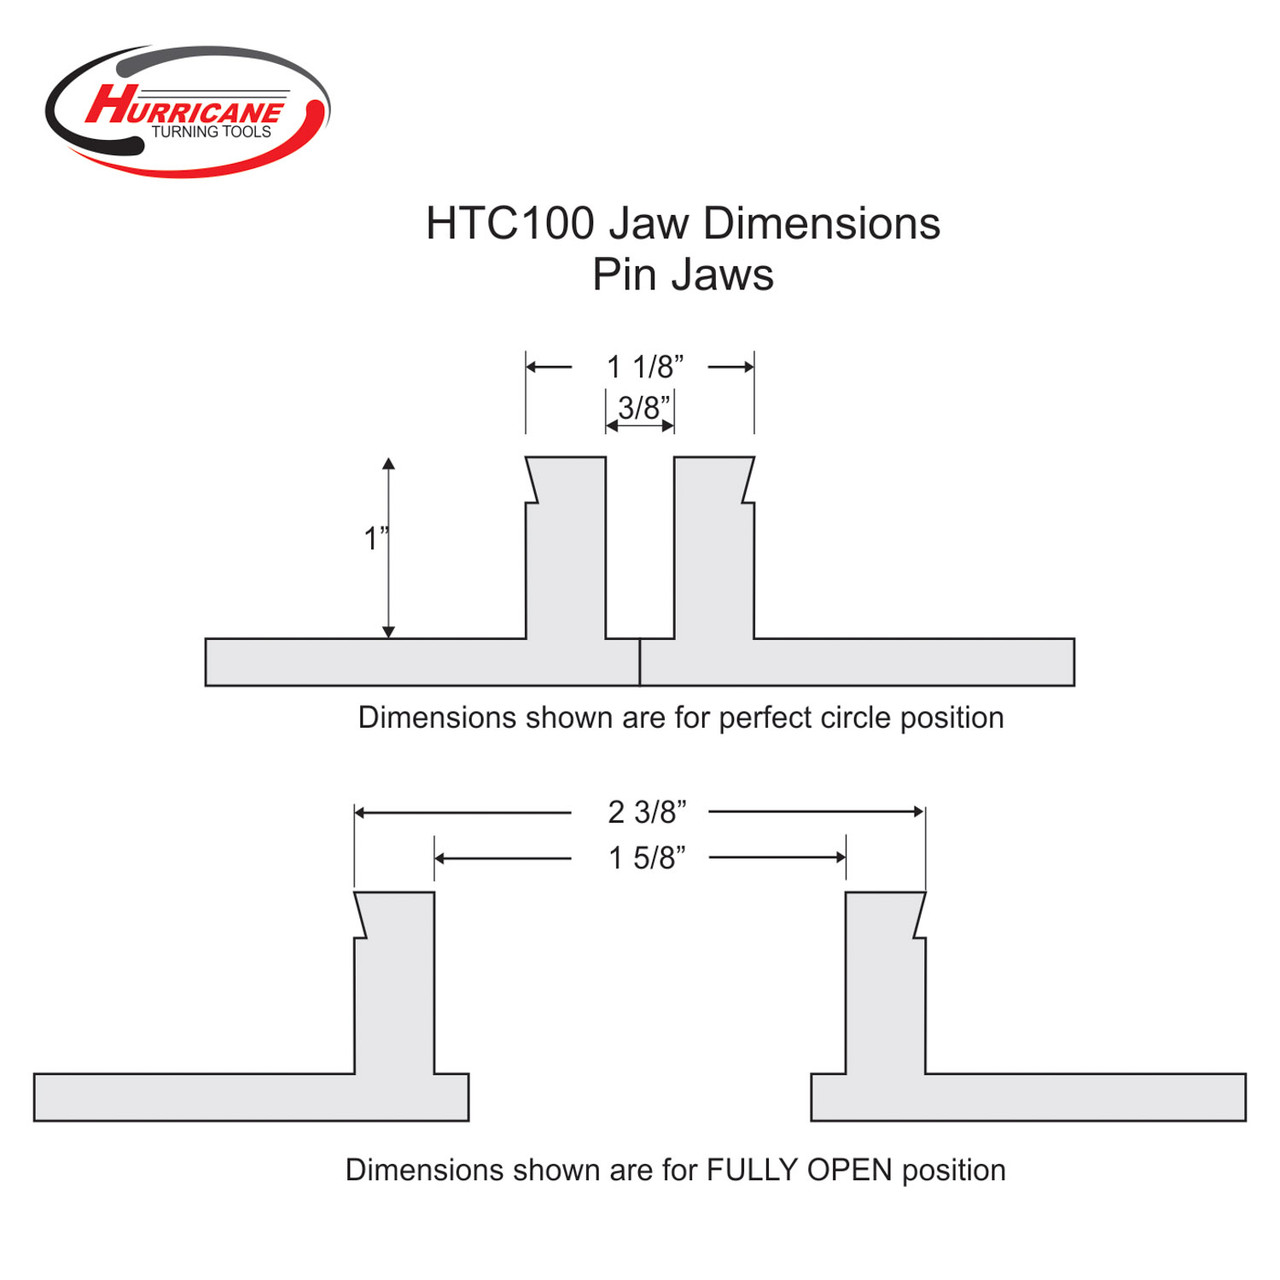 Hurricane Pin Jaws for the HTC100 Chuck